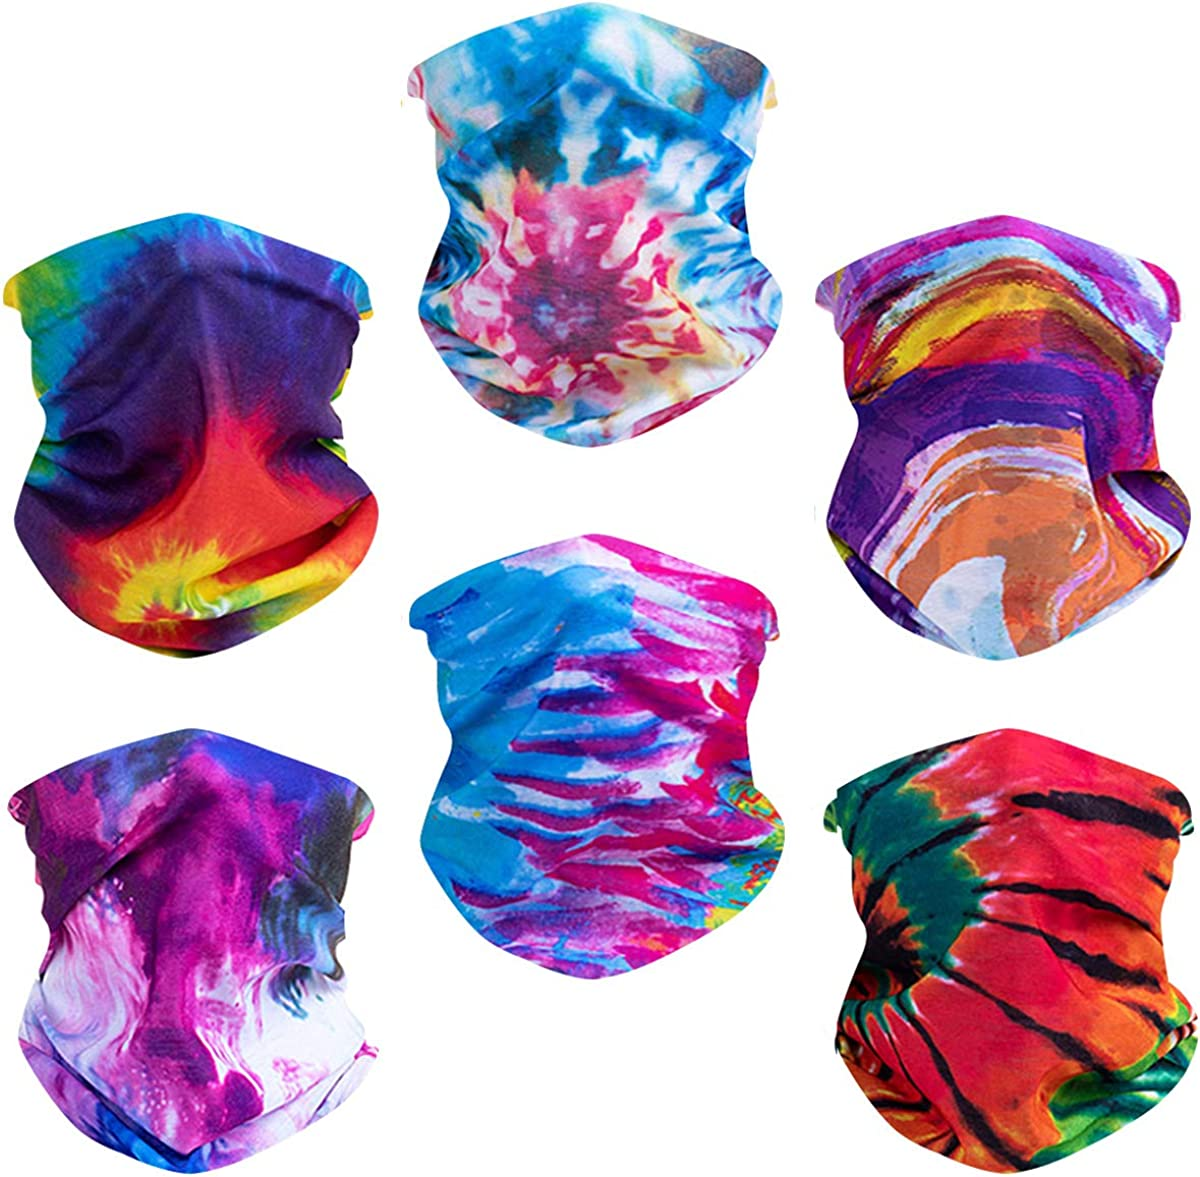 Toes Home 6PCS Outdoor Magic Headband Elastic Seamless Bandana Neck Gaiter Scarf UV Resistence Sport Headwear Boho Series for Yoga Hiking Riding Motorcycling